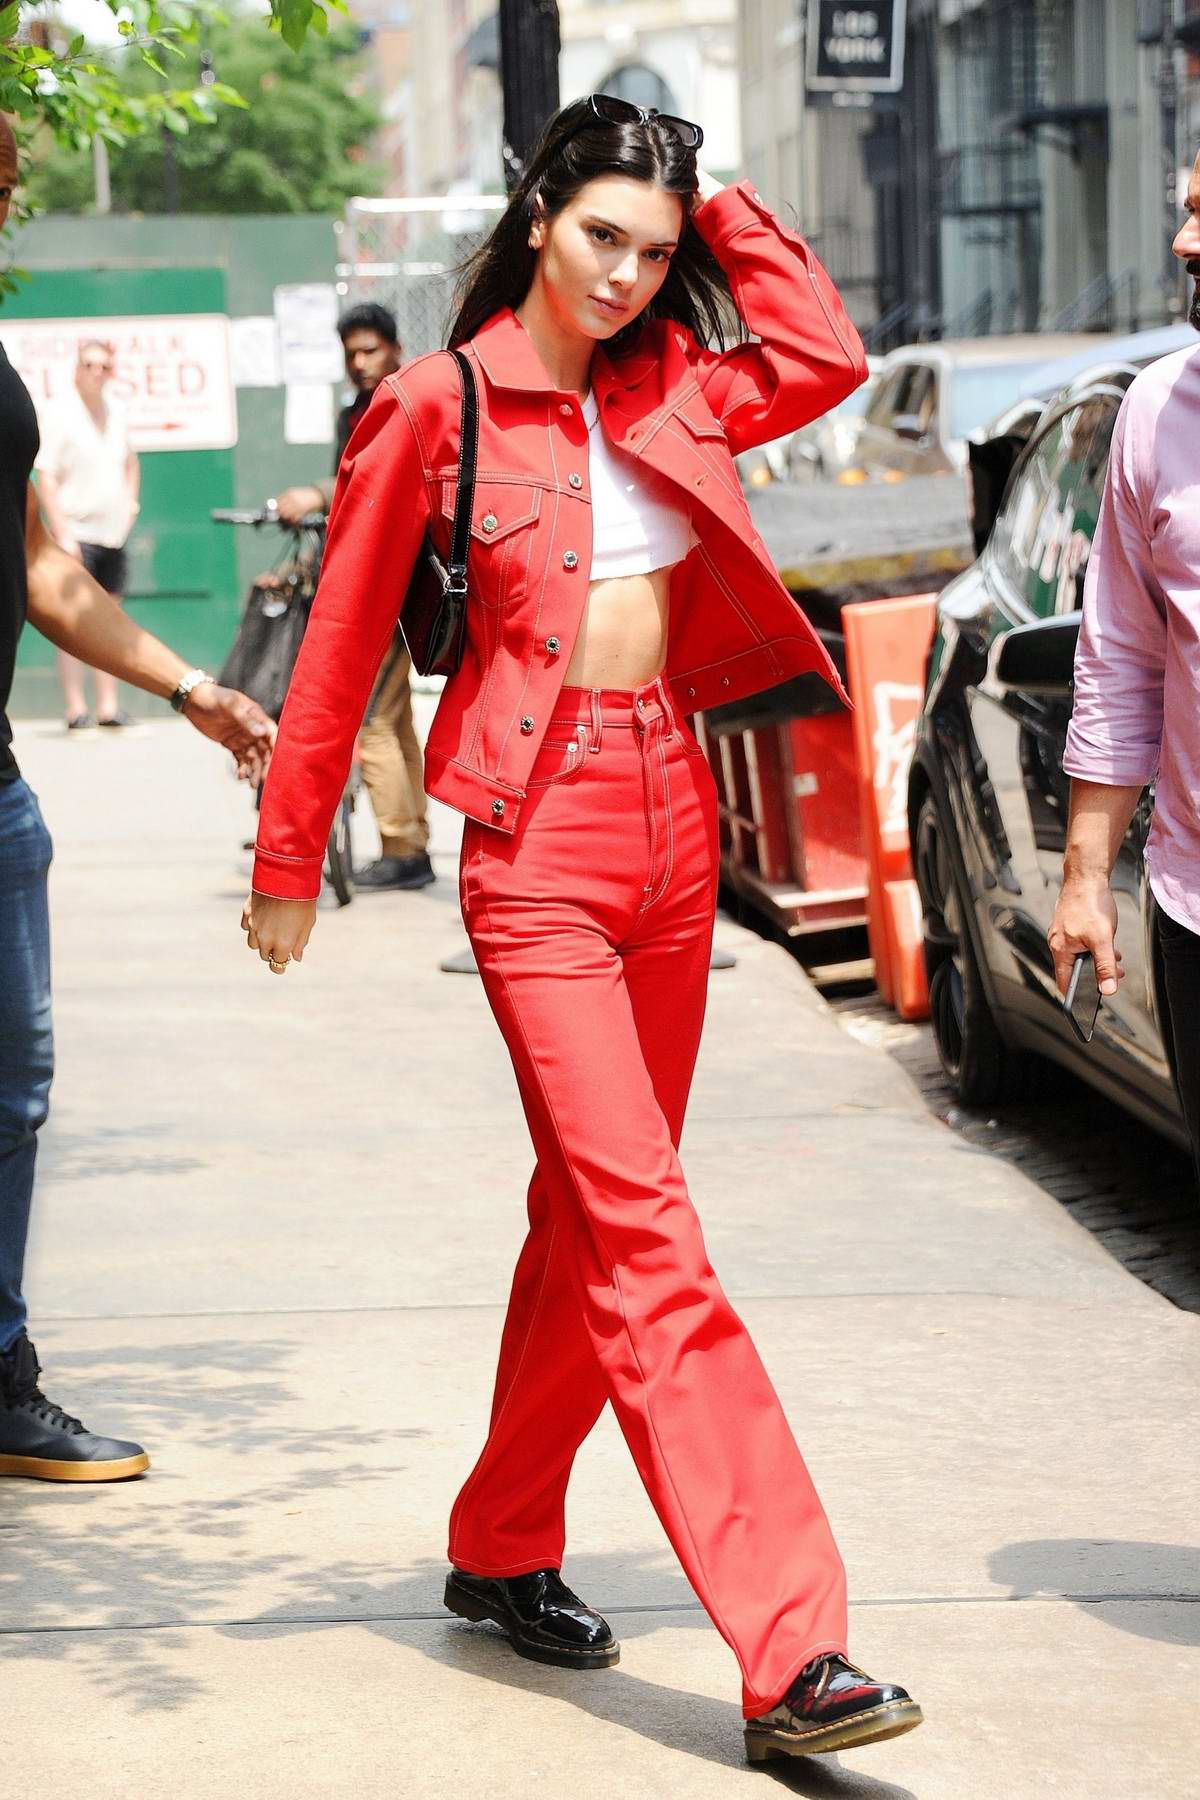 Kendall Jenner turns heads as she steps out in a matching red denim outfit in SoHo, New York City